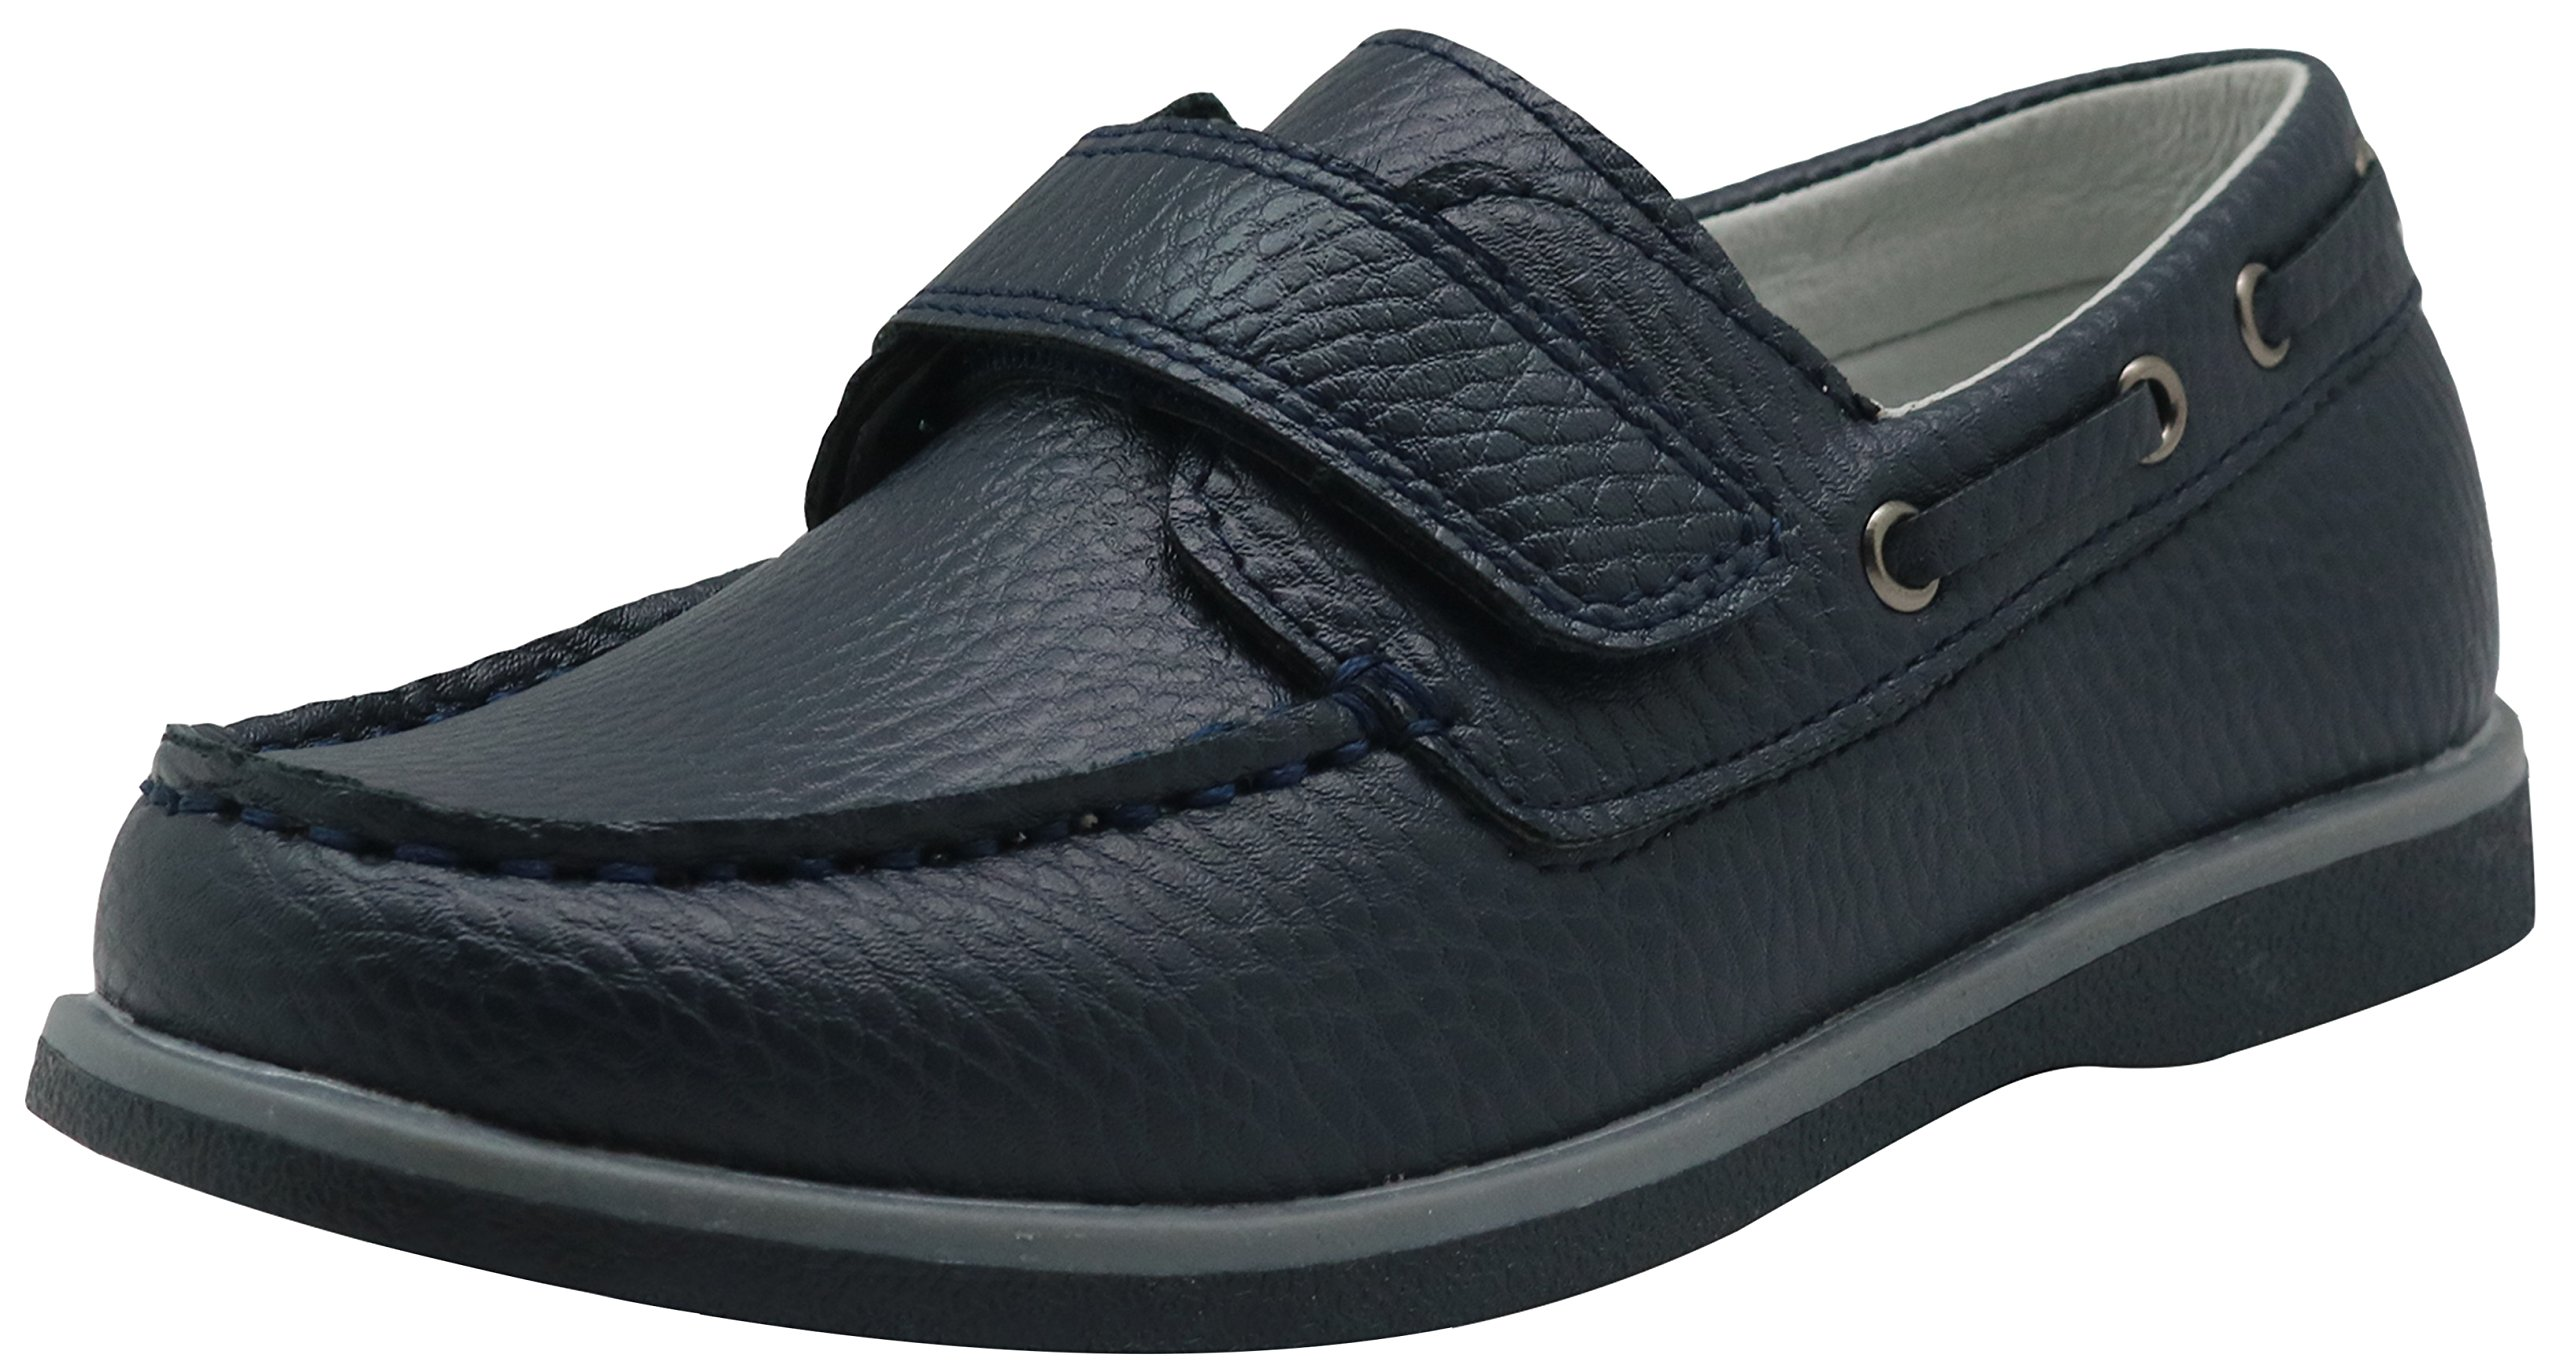 Apakowa Kids Boys Loafers Casual Slip On Boat Shoes with Strap (Toddler/Little Kid/Big Kid) (Color : Navy, Size : 11 M US Little Kid)